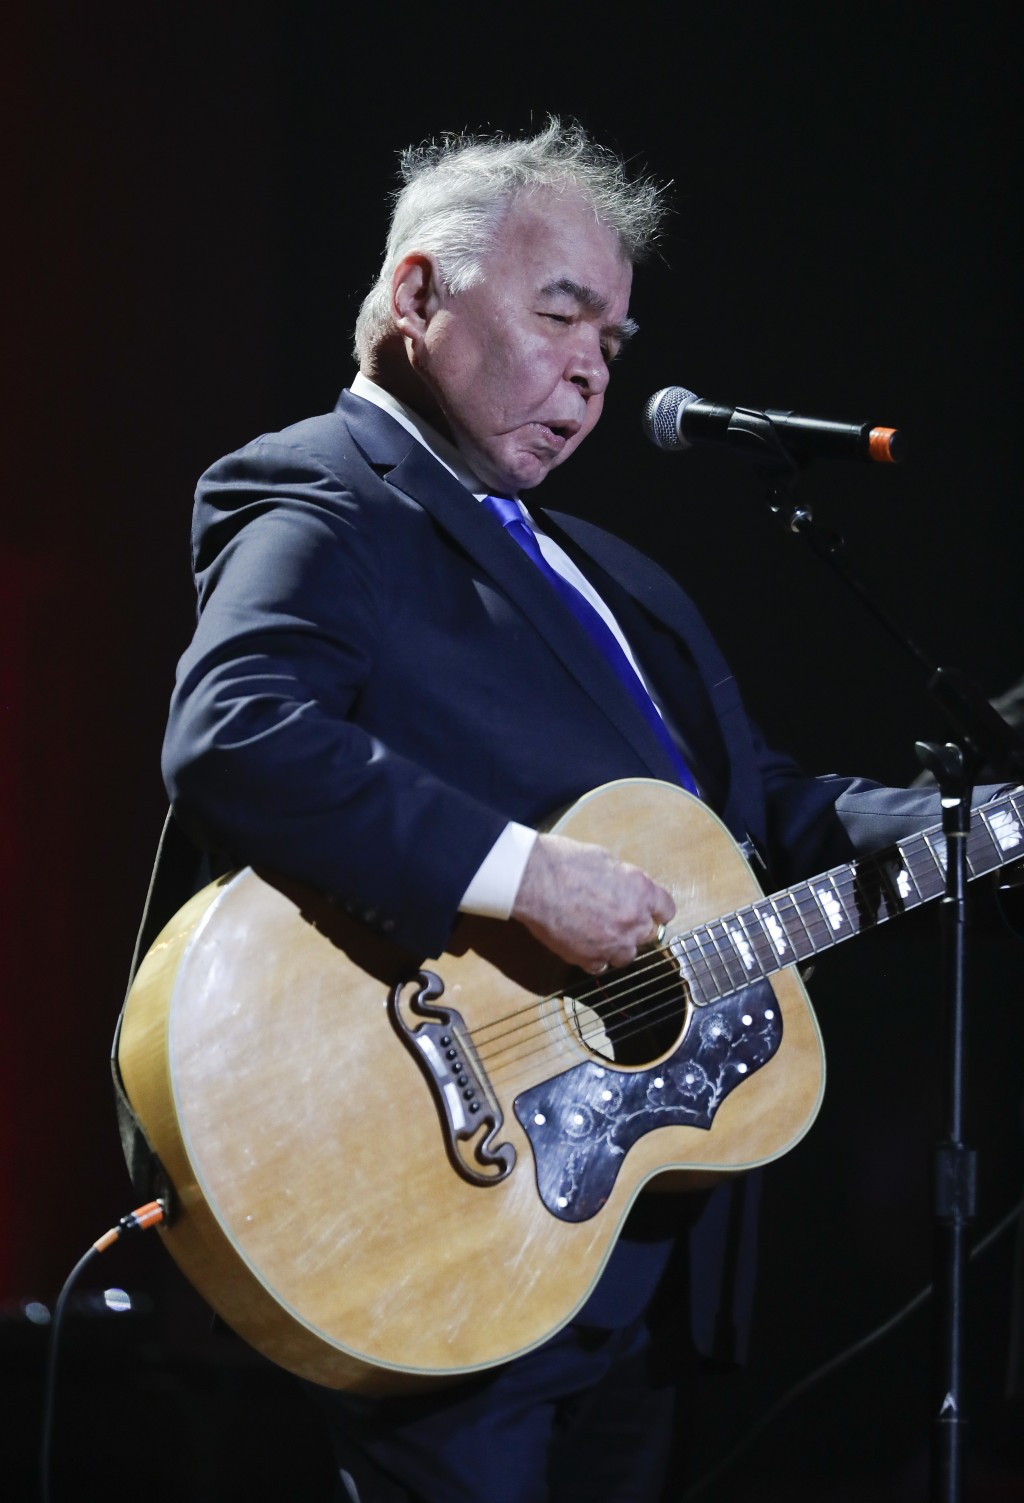 FILE - In this Wednesday, Sept. 13, 2017 file photo, John Prine performs during the Americana Honors and Awards show in Nashville, Tenn. Missy Elliott